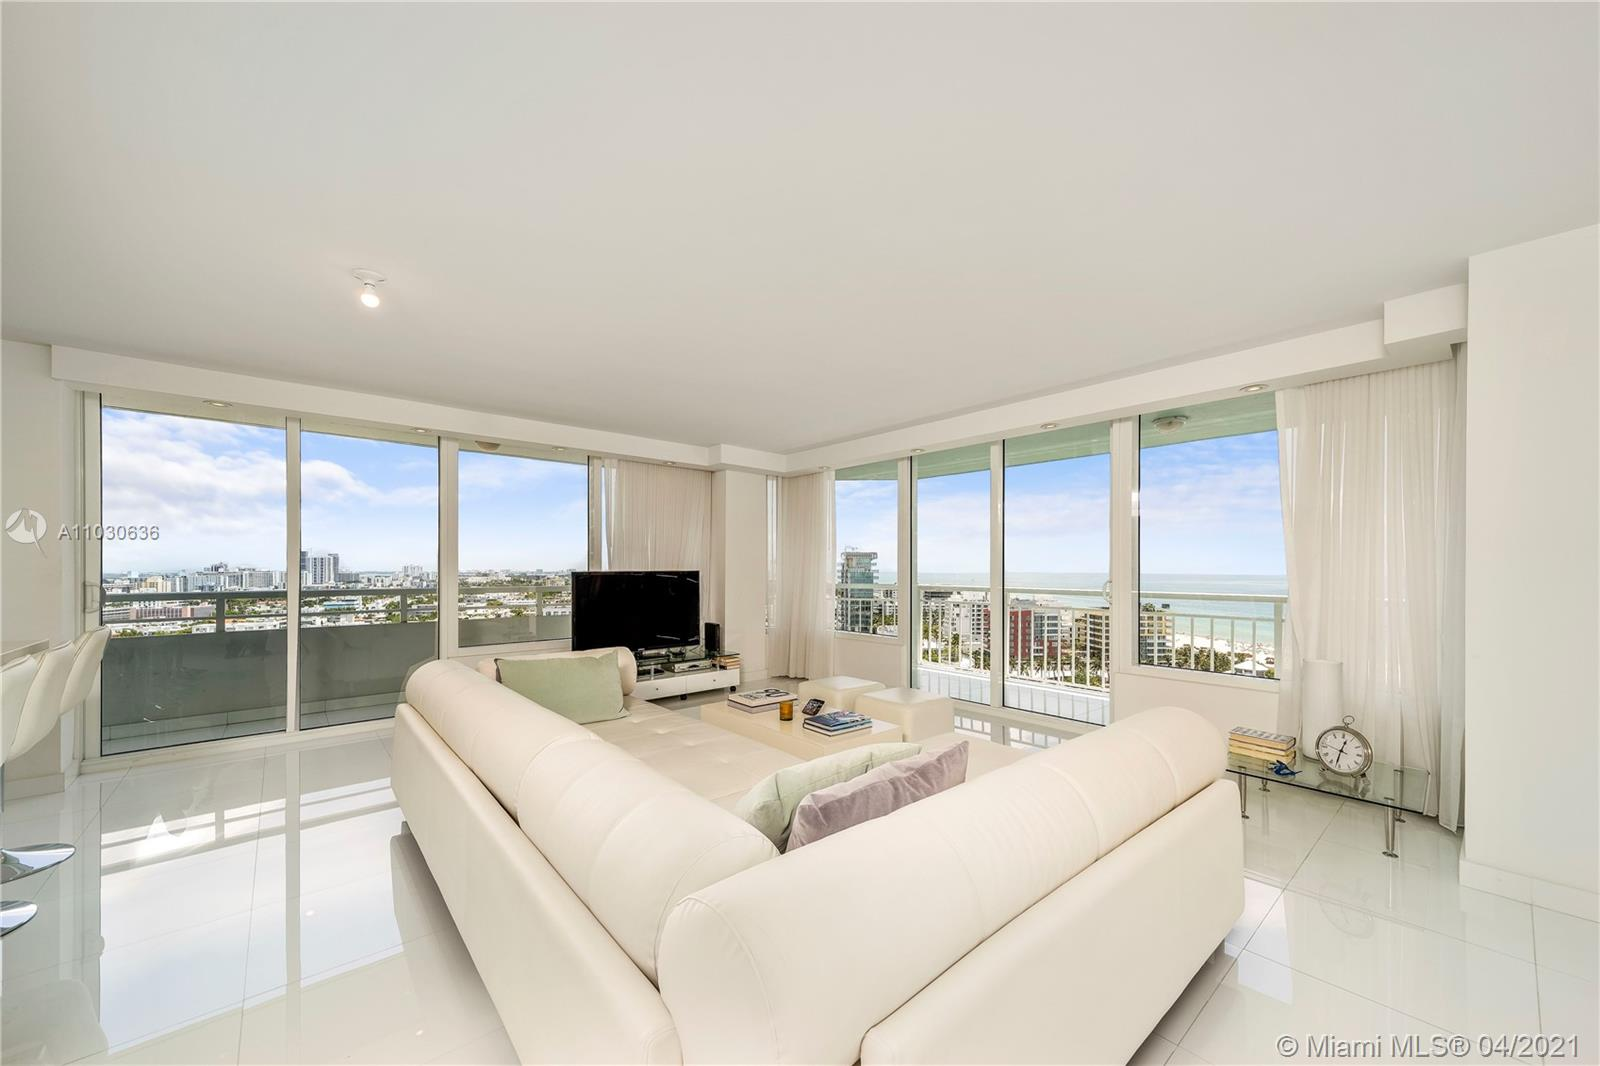 Complete high-end modern renovated high floor corner residence with breathtaking ocean and city views from the best location and neighborhood in Miami Beach; South of Fifth. Spacious living room with an abundance of natural light and a large wrap around terrace. Open kitchen with a large island, great for families and entertaining. Upgraded hurricane Impact windows and sliding doors. Large wrap around terrace. Open kitchen with breakfast area, including high-end appliances. Well appointed bedrooms with stunning ocean views. Walk to the ocean, South Pointe Park, Miami Beach Marina, boardwalk, bay walk, and dozens of 5 star restaurants. Remodeled pool deck, tennis courts, dog park, gym and more coming soon! Great opportunity, do not miss out!